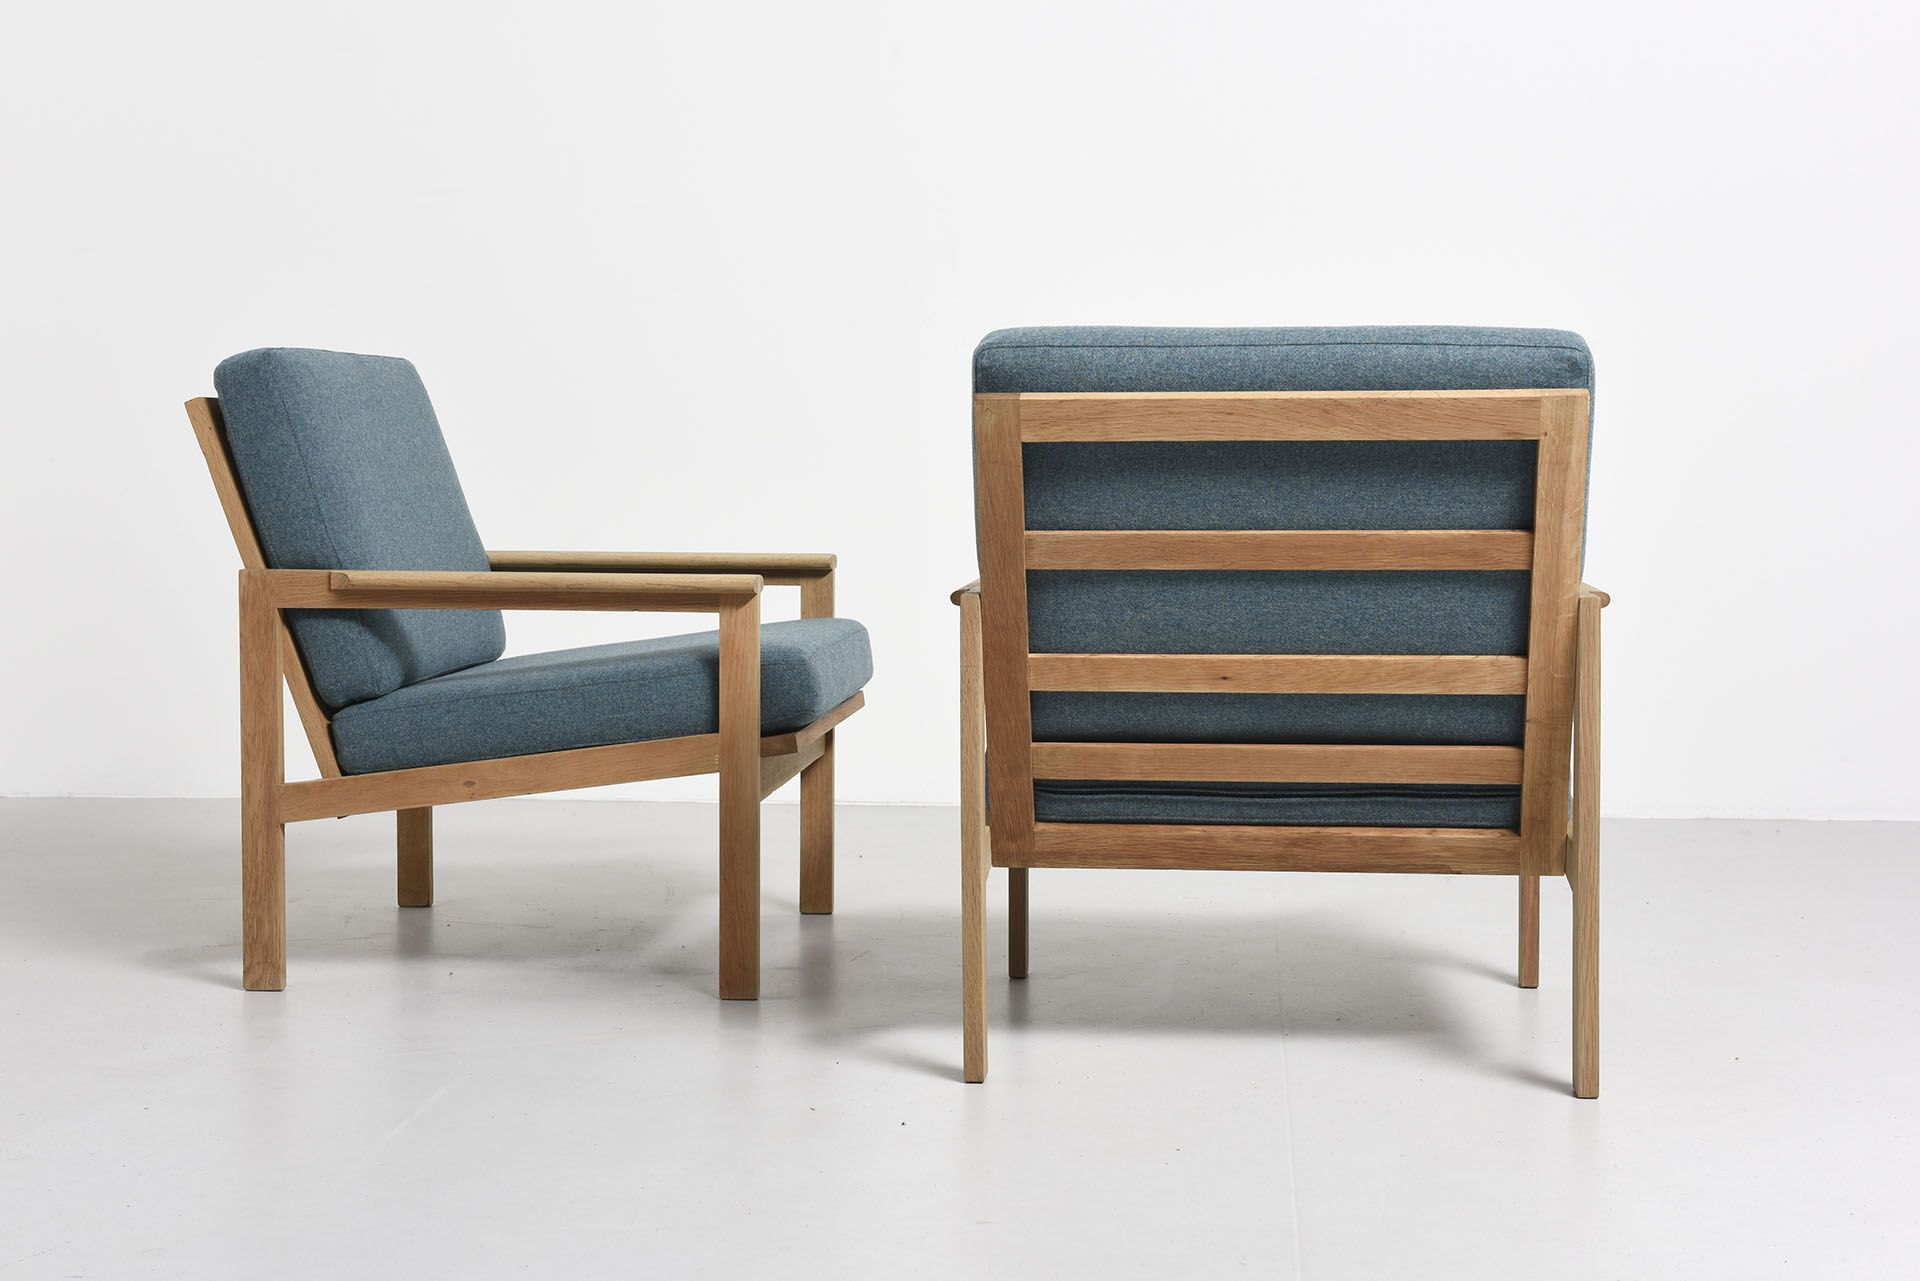 2 CAPELLA CHAIRS IN OAK by ILLUM